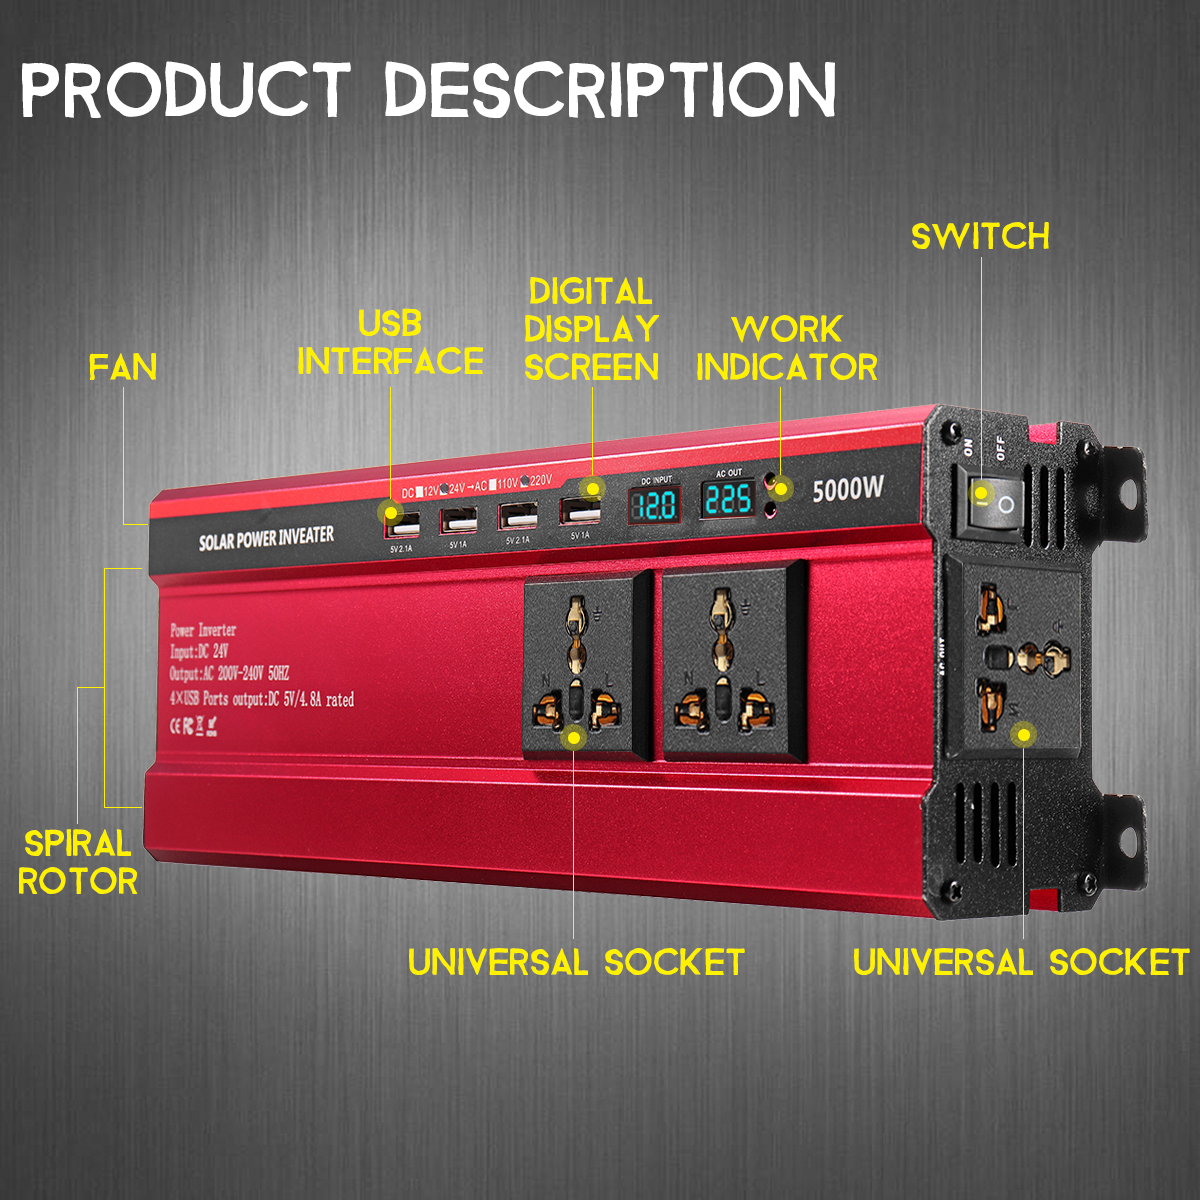 5000W Peak Solar Power Inverter DC 12V/24V To AC 110V/220V Modified Sine Wave Converter